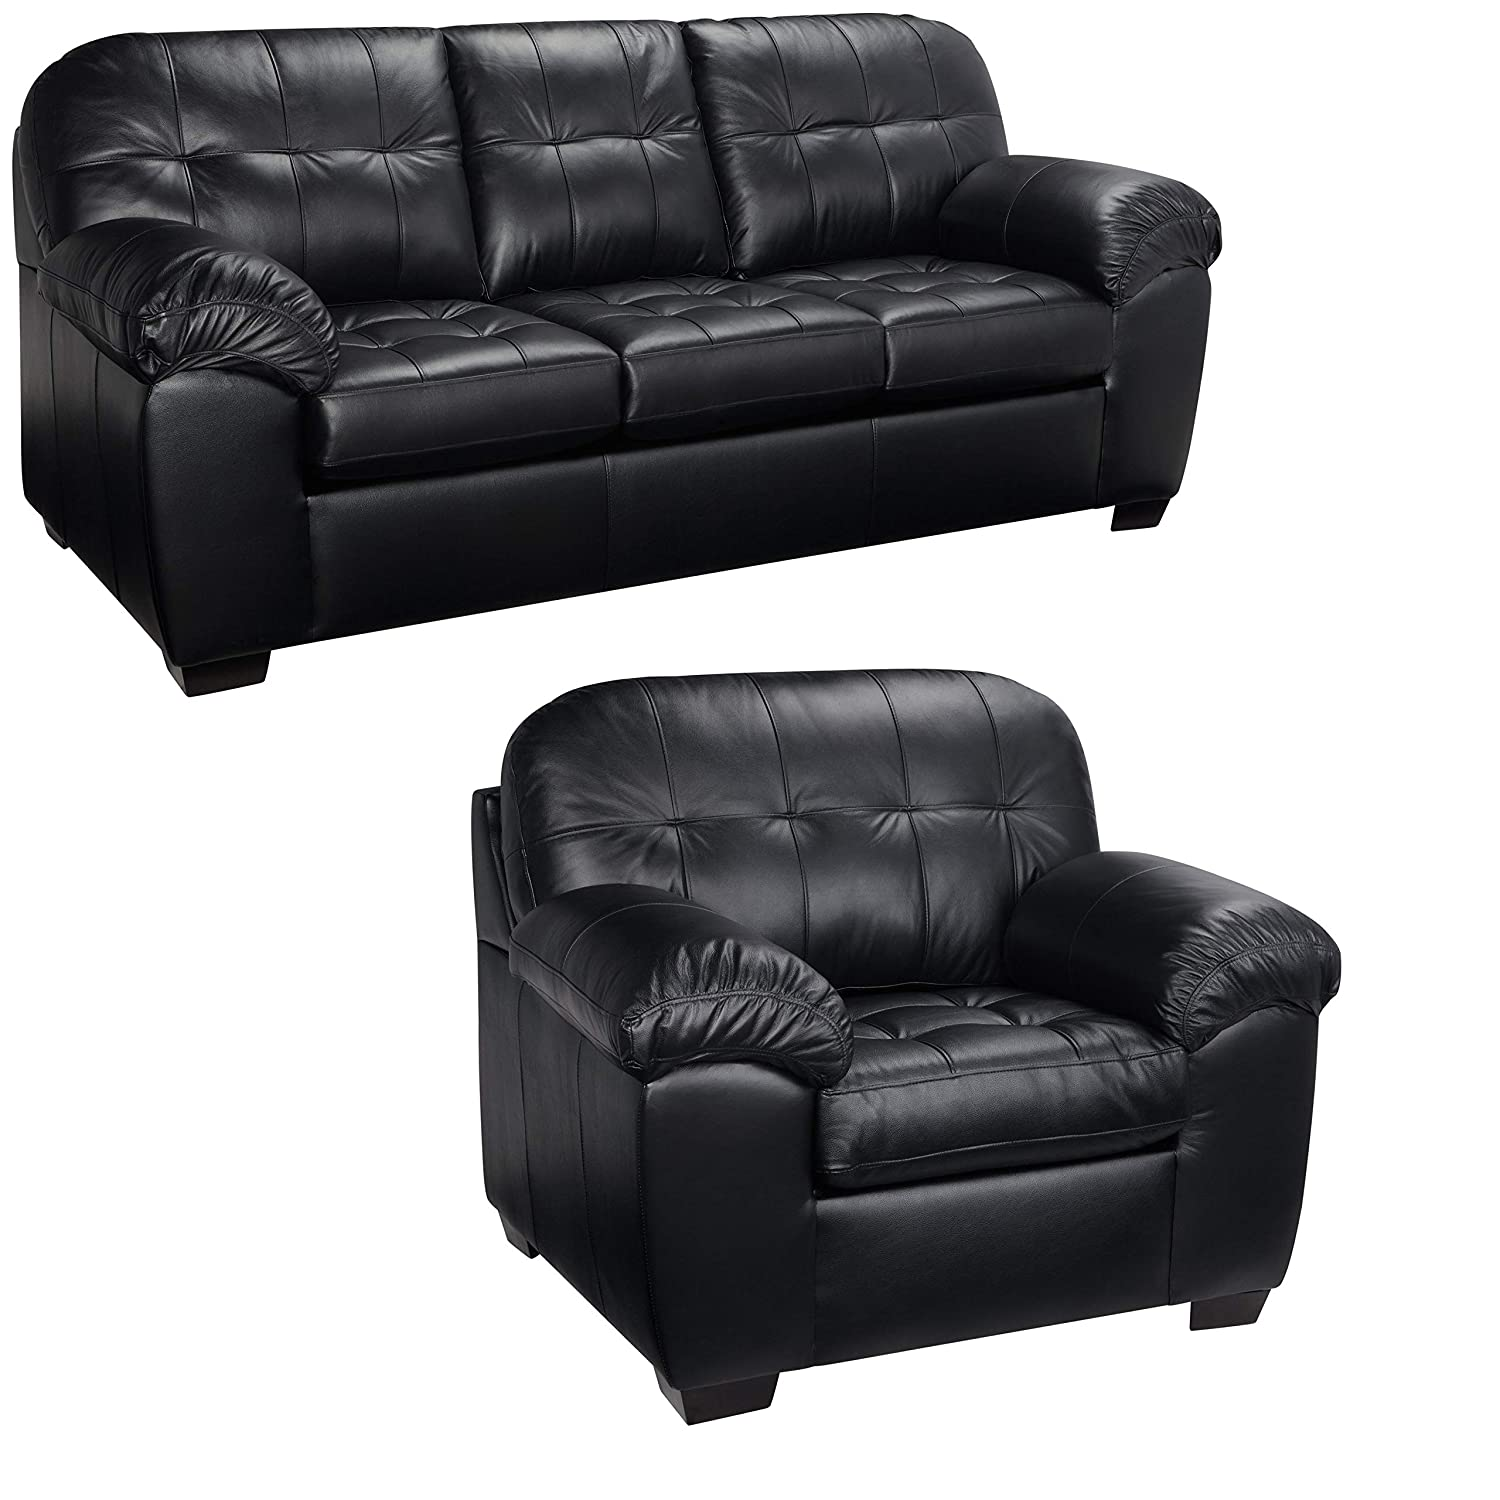 Amazon.com: Black Italian Leather Sofa and Chair Set - This Living ...